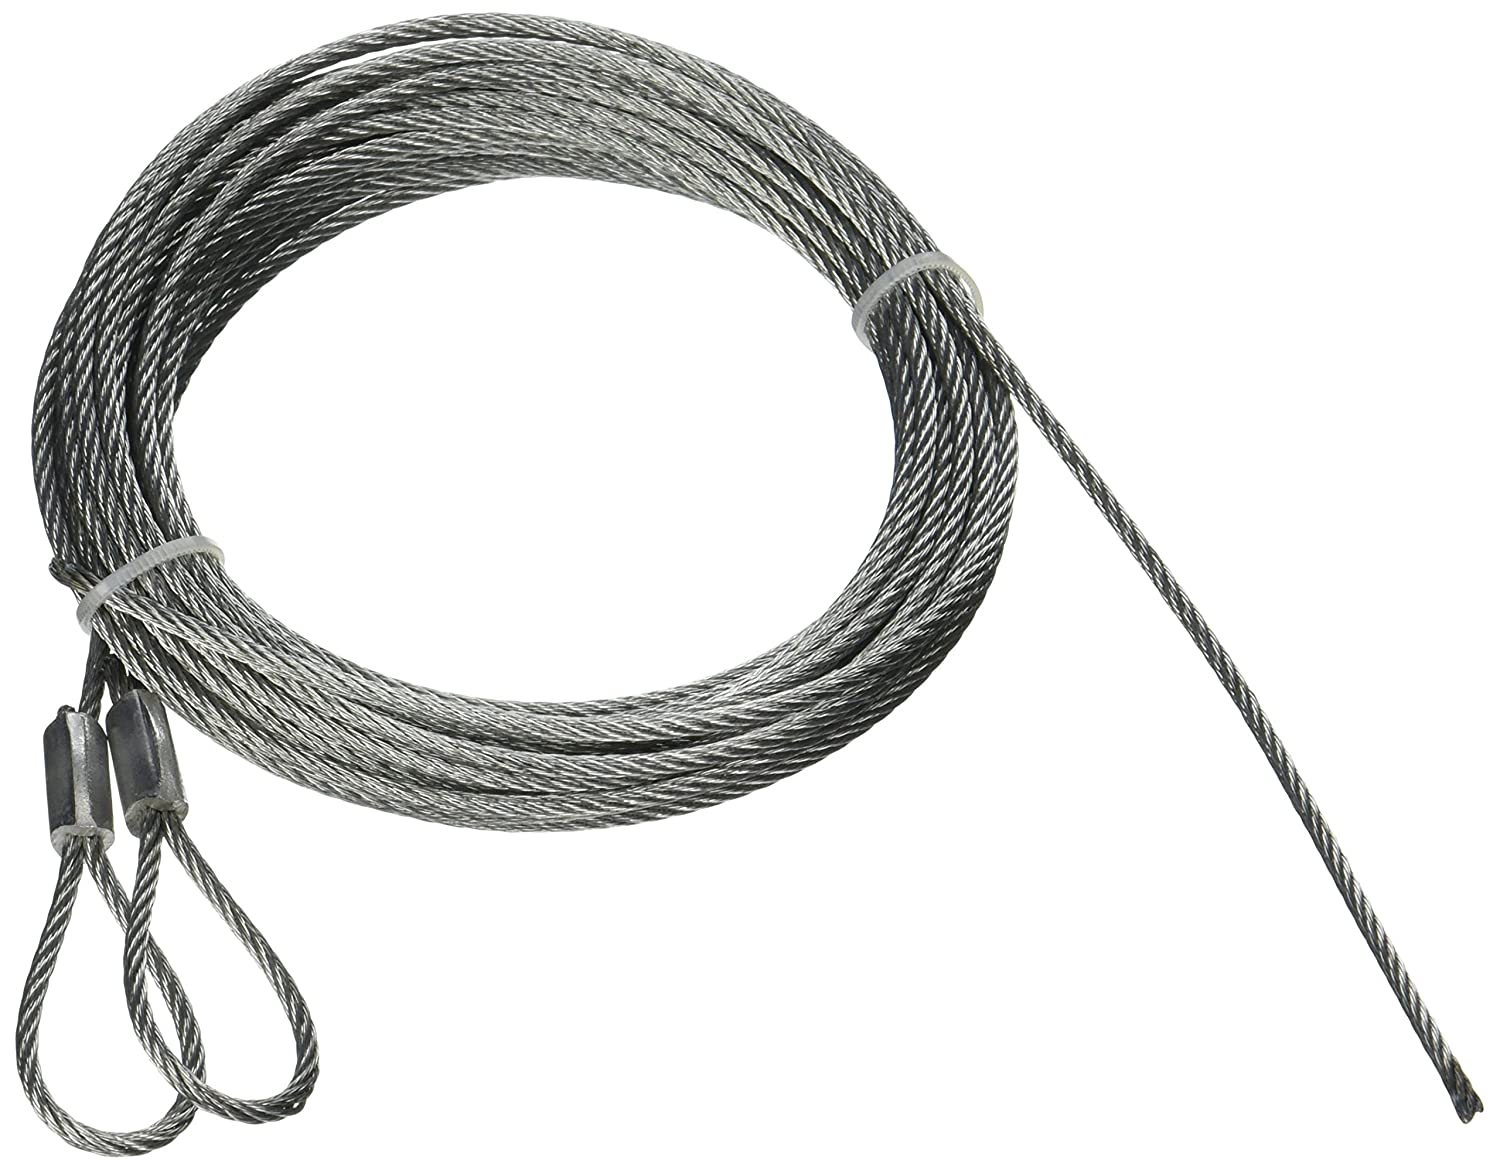 Prime Line Products GD52101 Prime Line Gd 52101 Aircraft Cable 3 32 in Dia X 12 Ft L quot